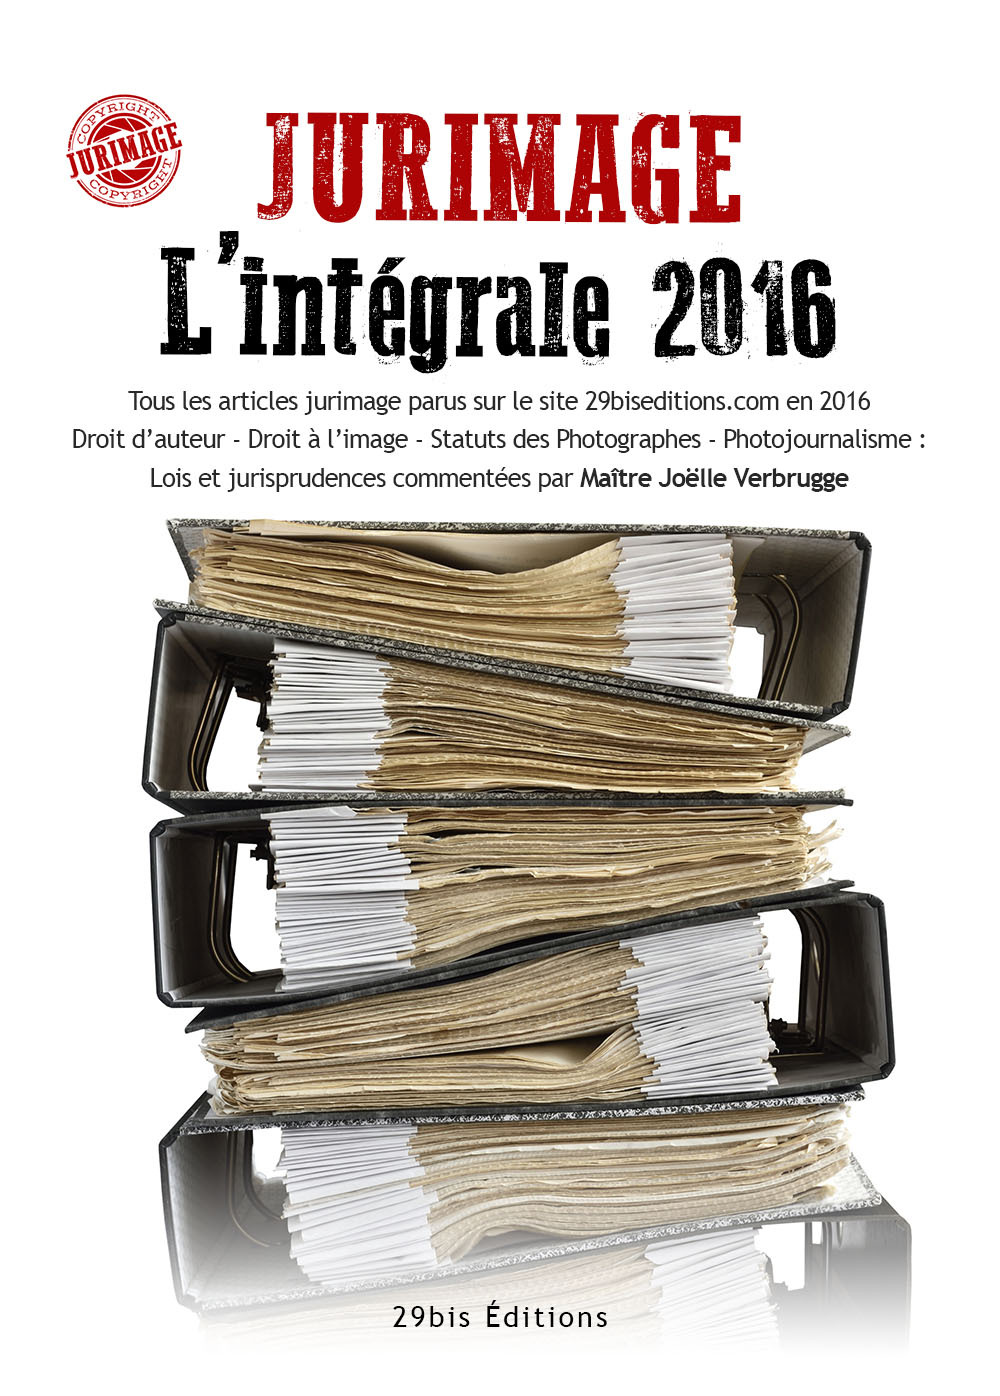 JURIMAGE L'INTEGRALE 2016